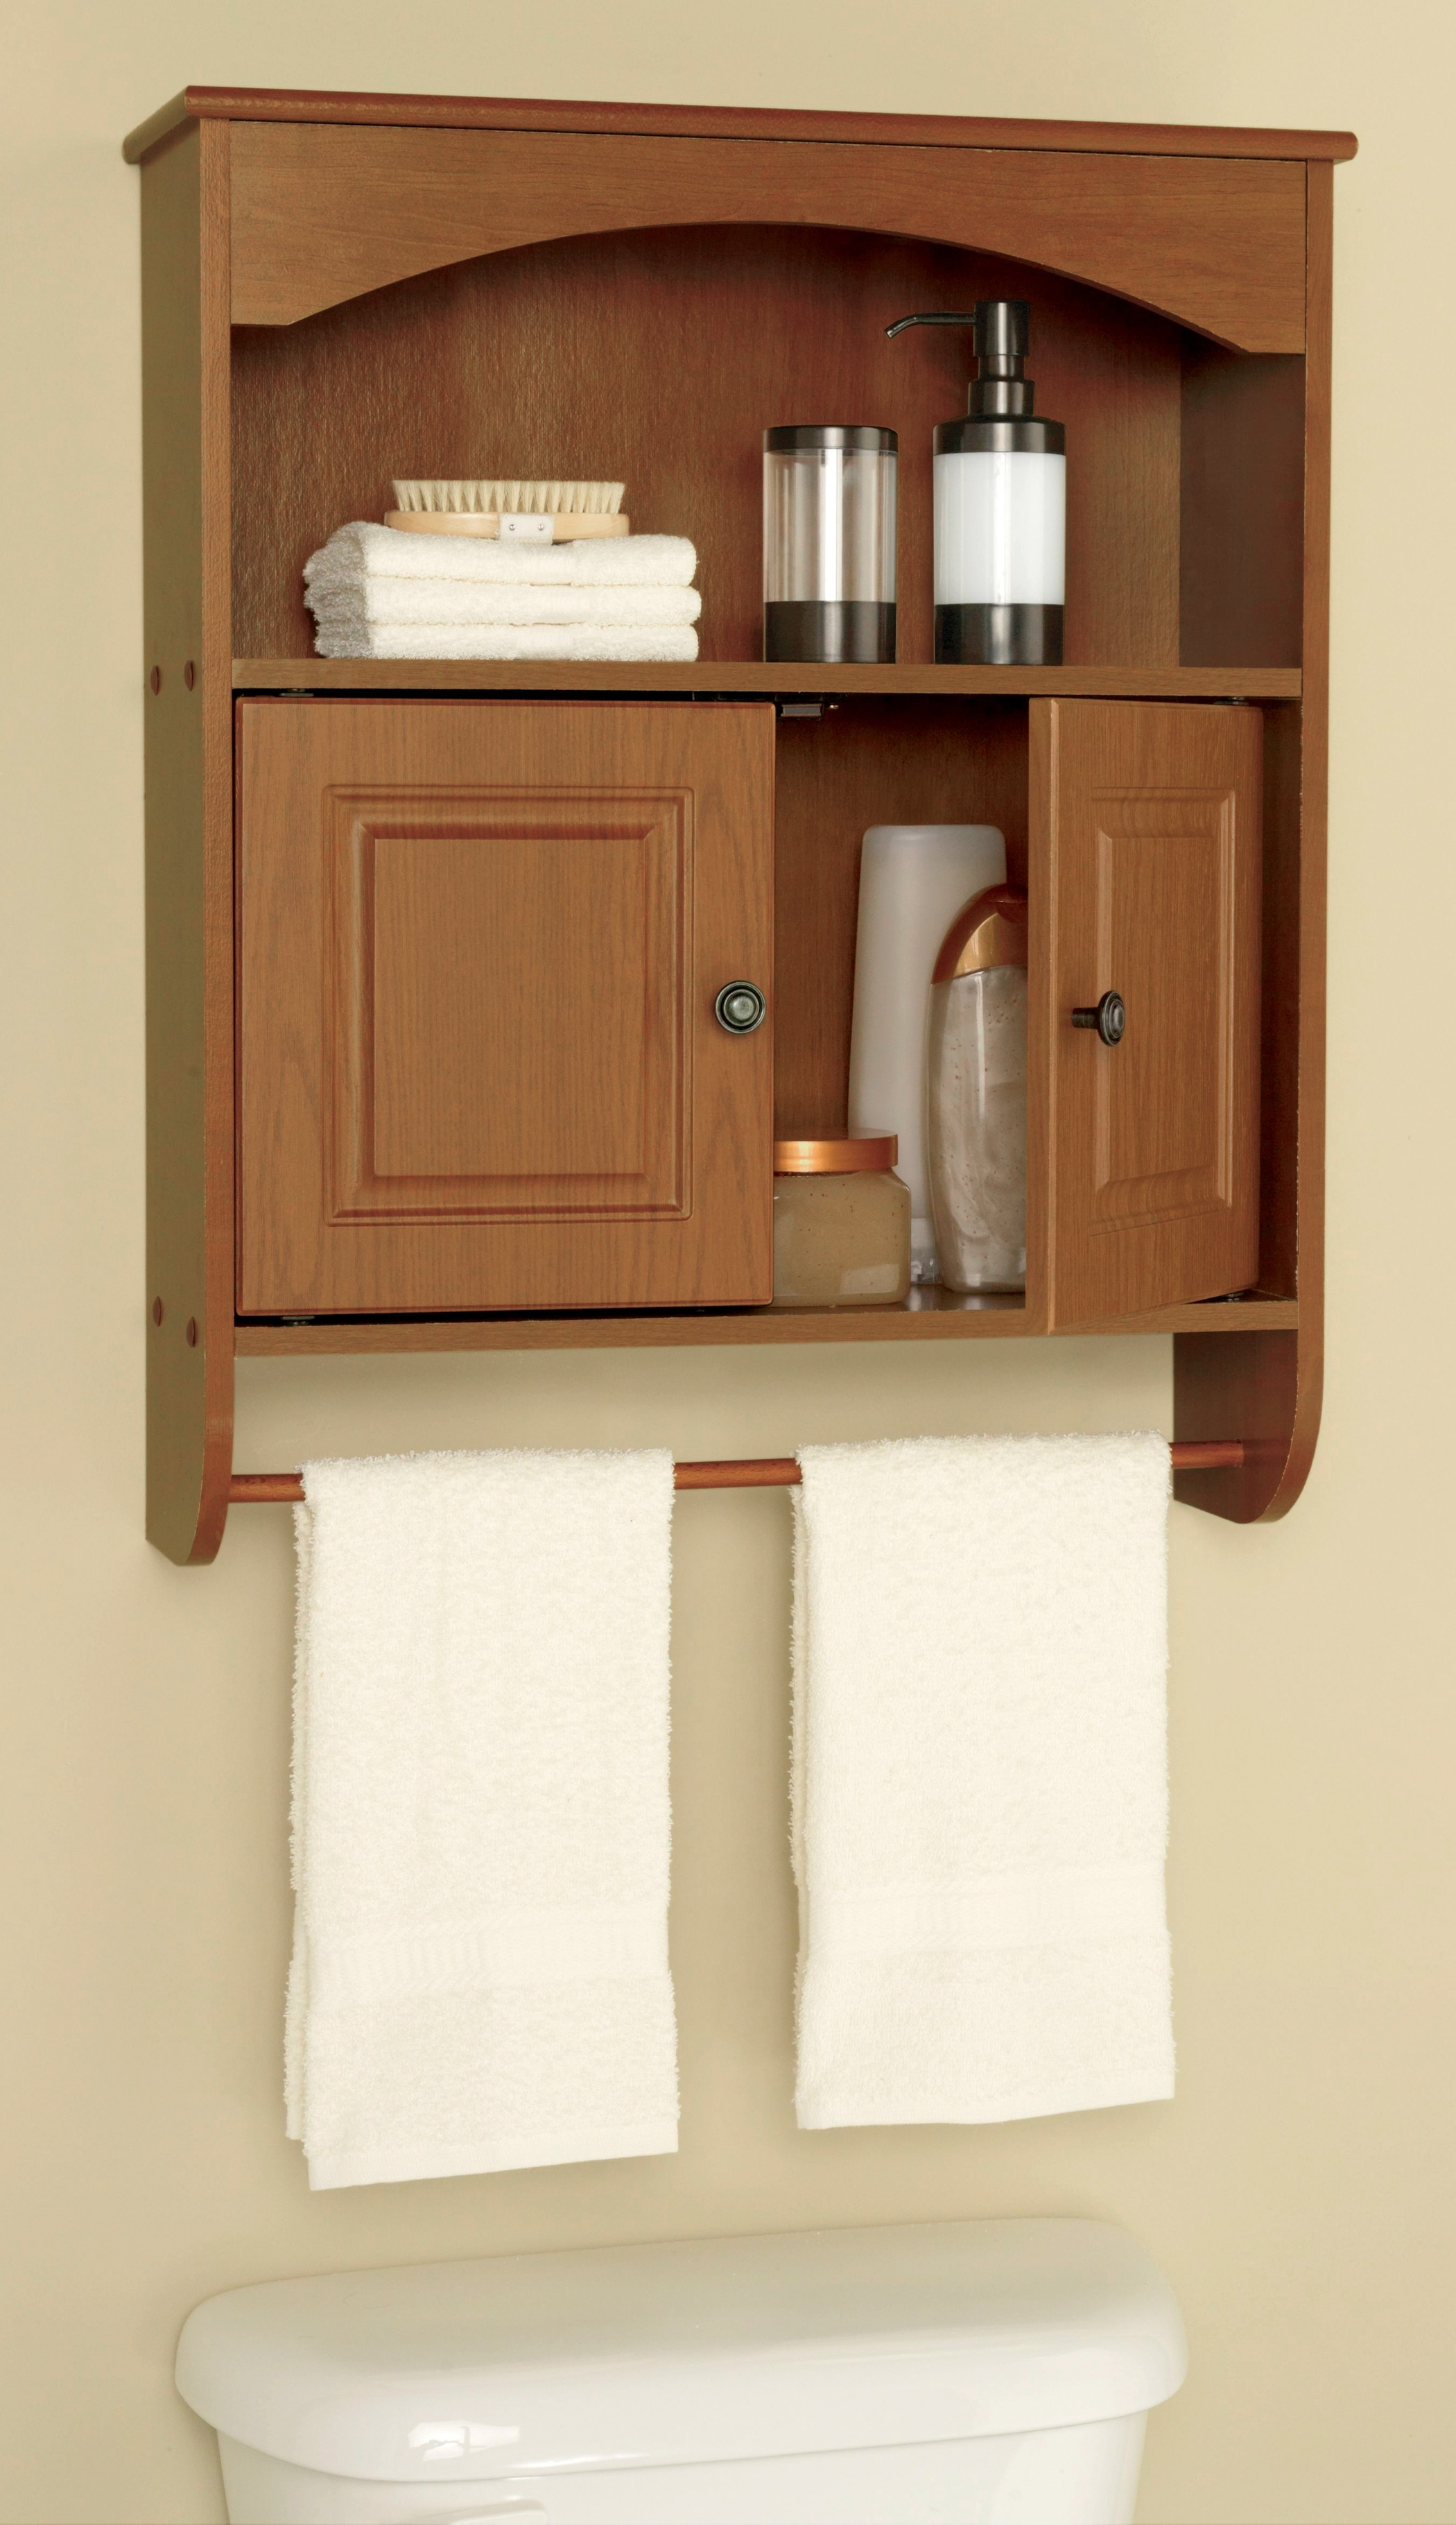 Bathroom Wall Cabinets For Towelsclassic wall mounted lacquered oak wood bathroom cabinet with